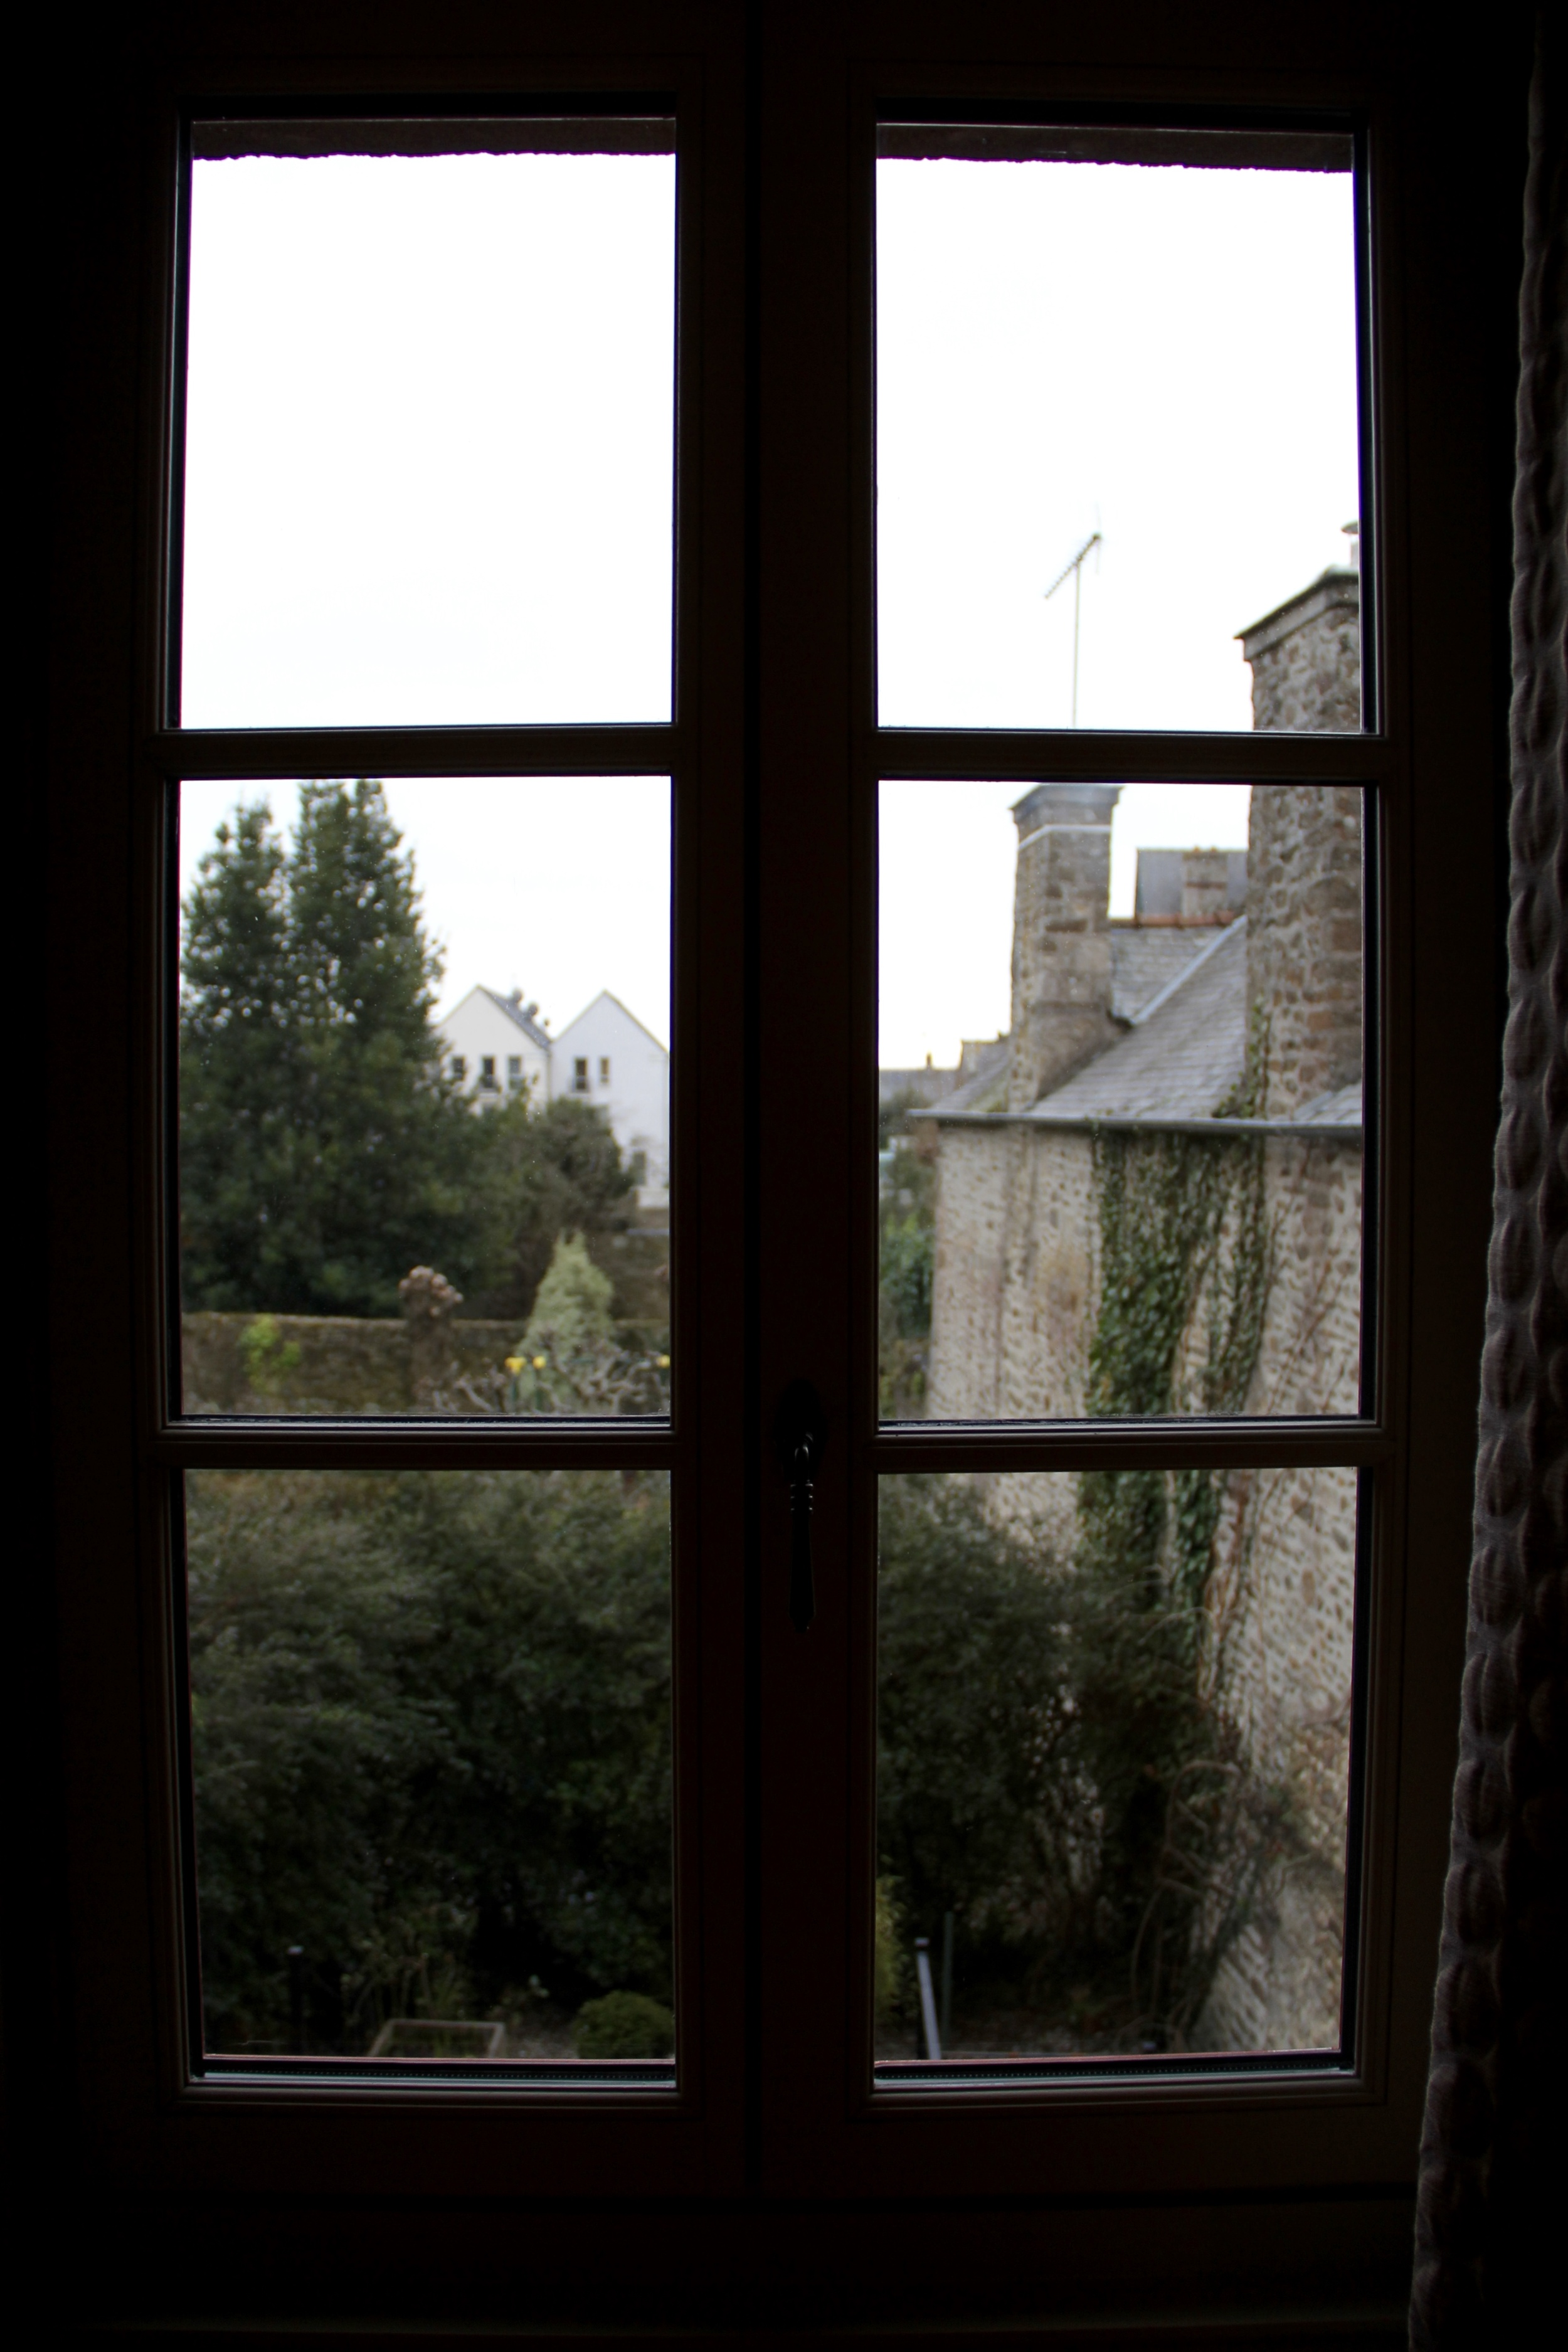 charming paned glass window in our room at La Maison Pavie in Dinan, France